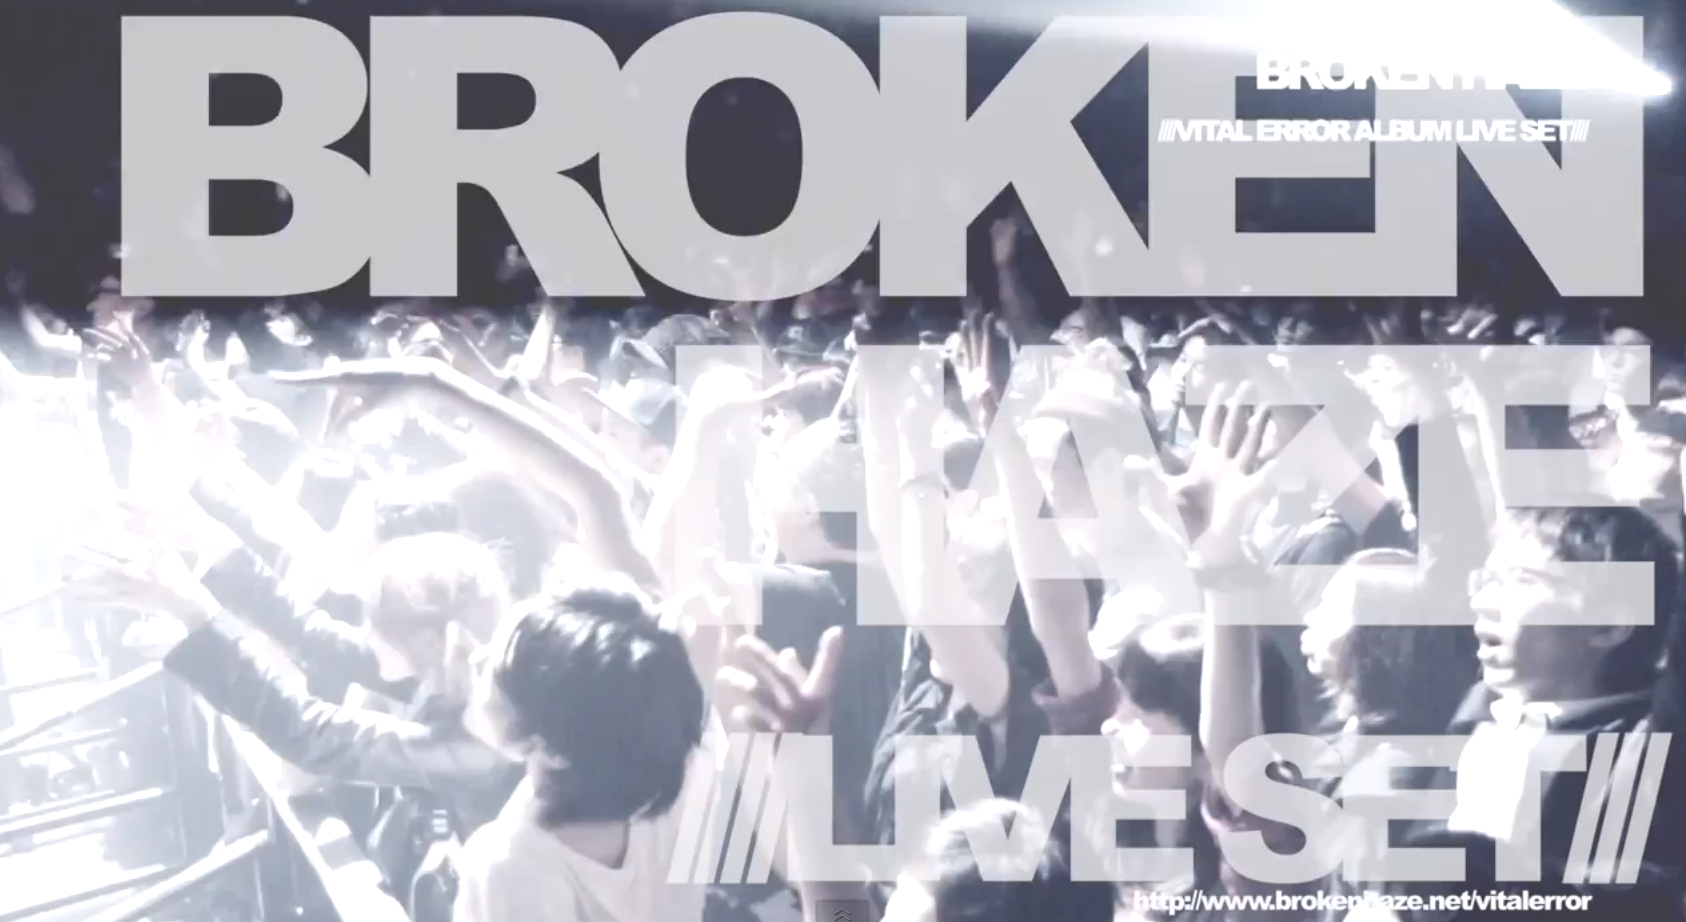 broken-haze-live-movie